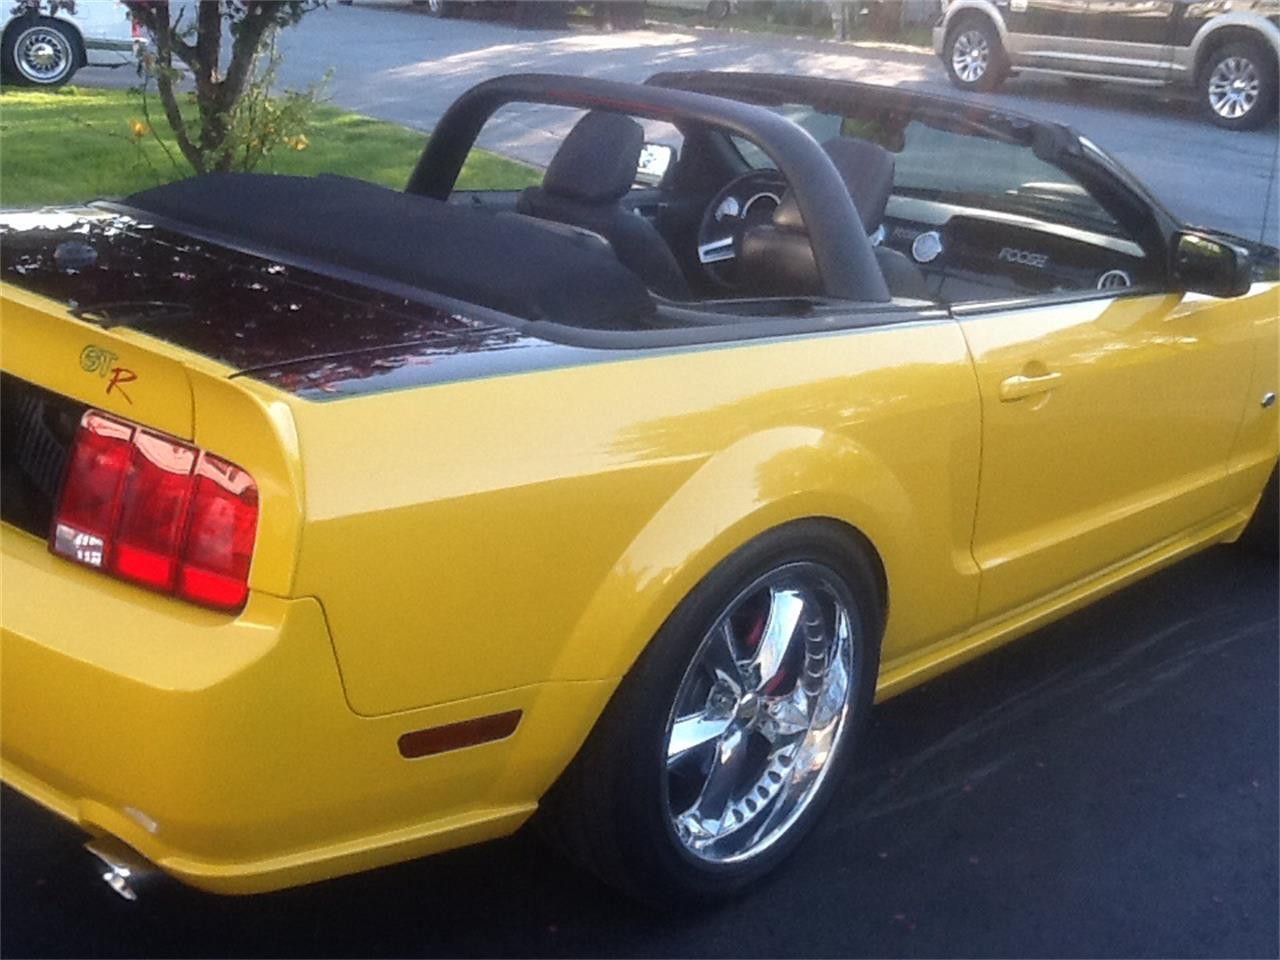 Large Picture of '07 Ford Mustang GT located in Halifax Nova Scotia - $40,000.00 Offered by a Private Seller - QCB1